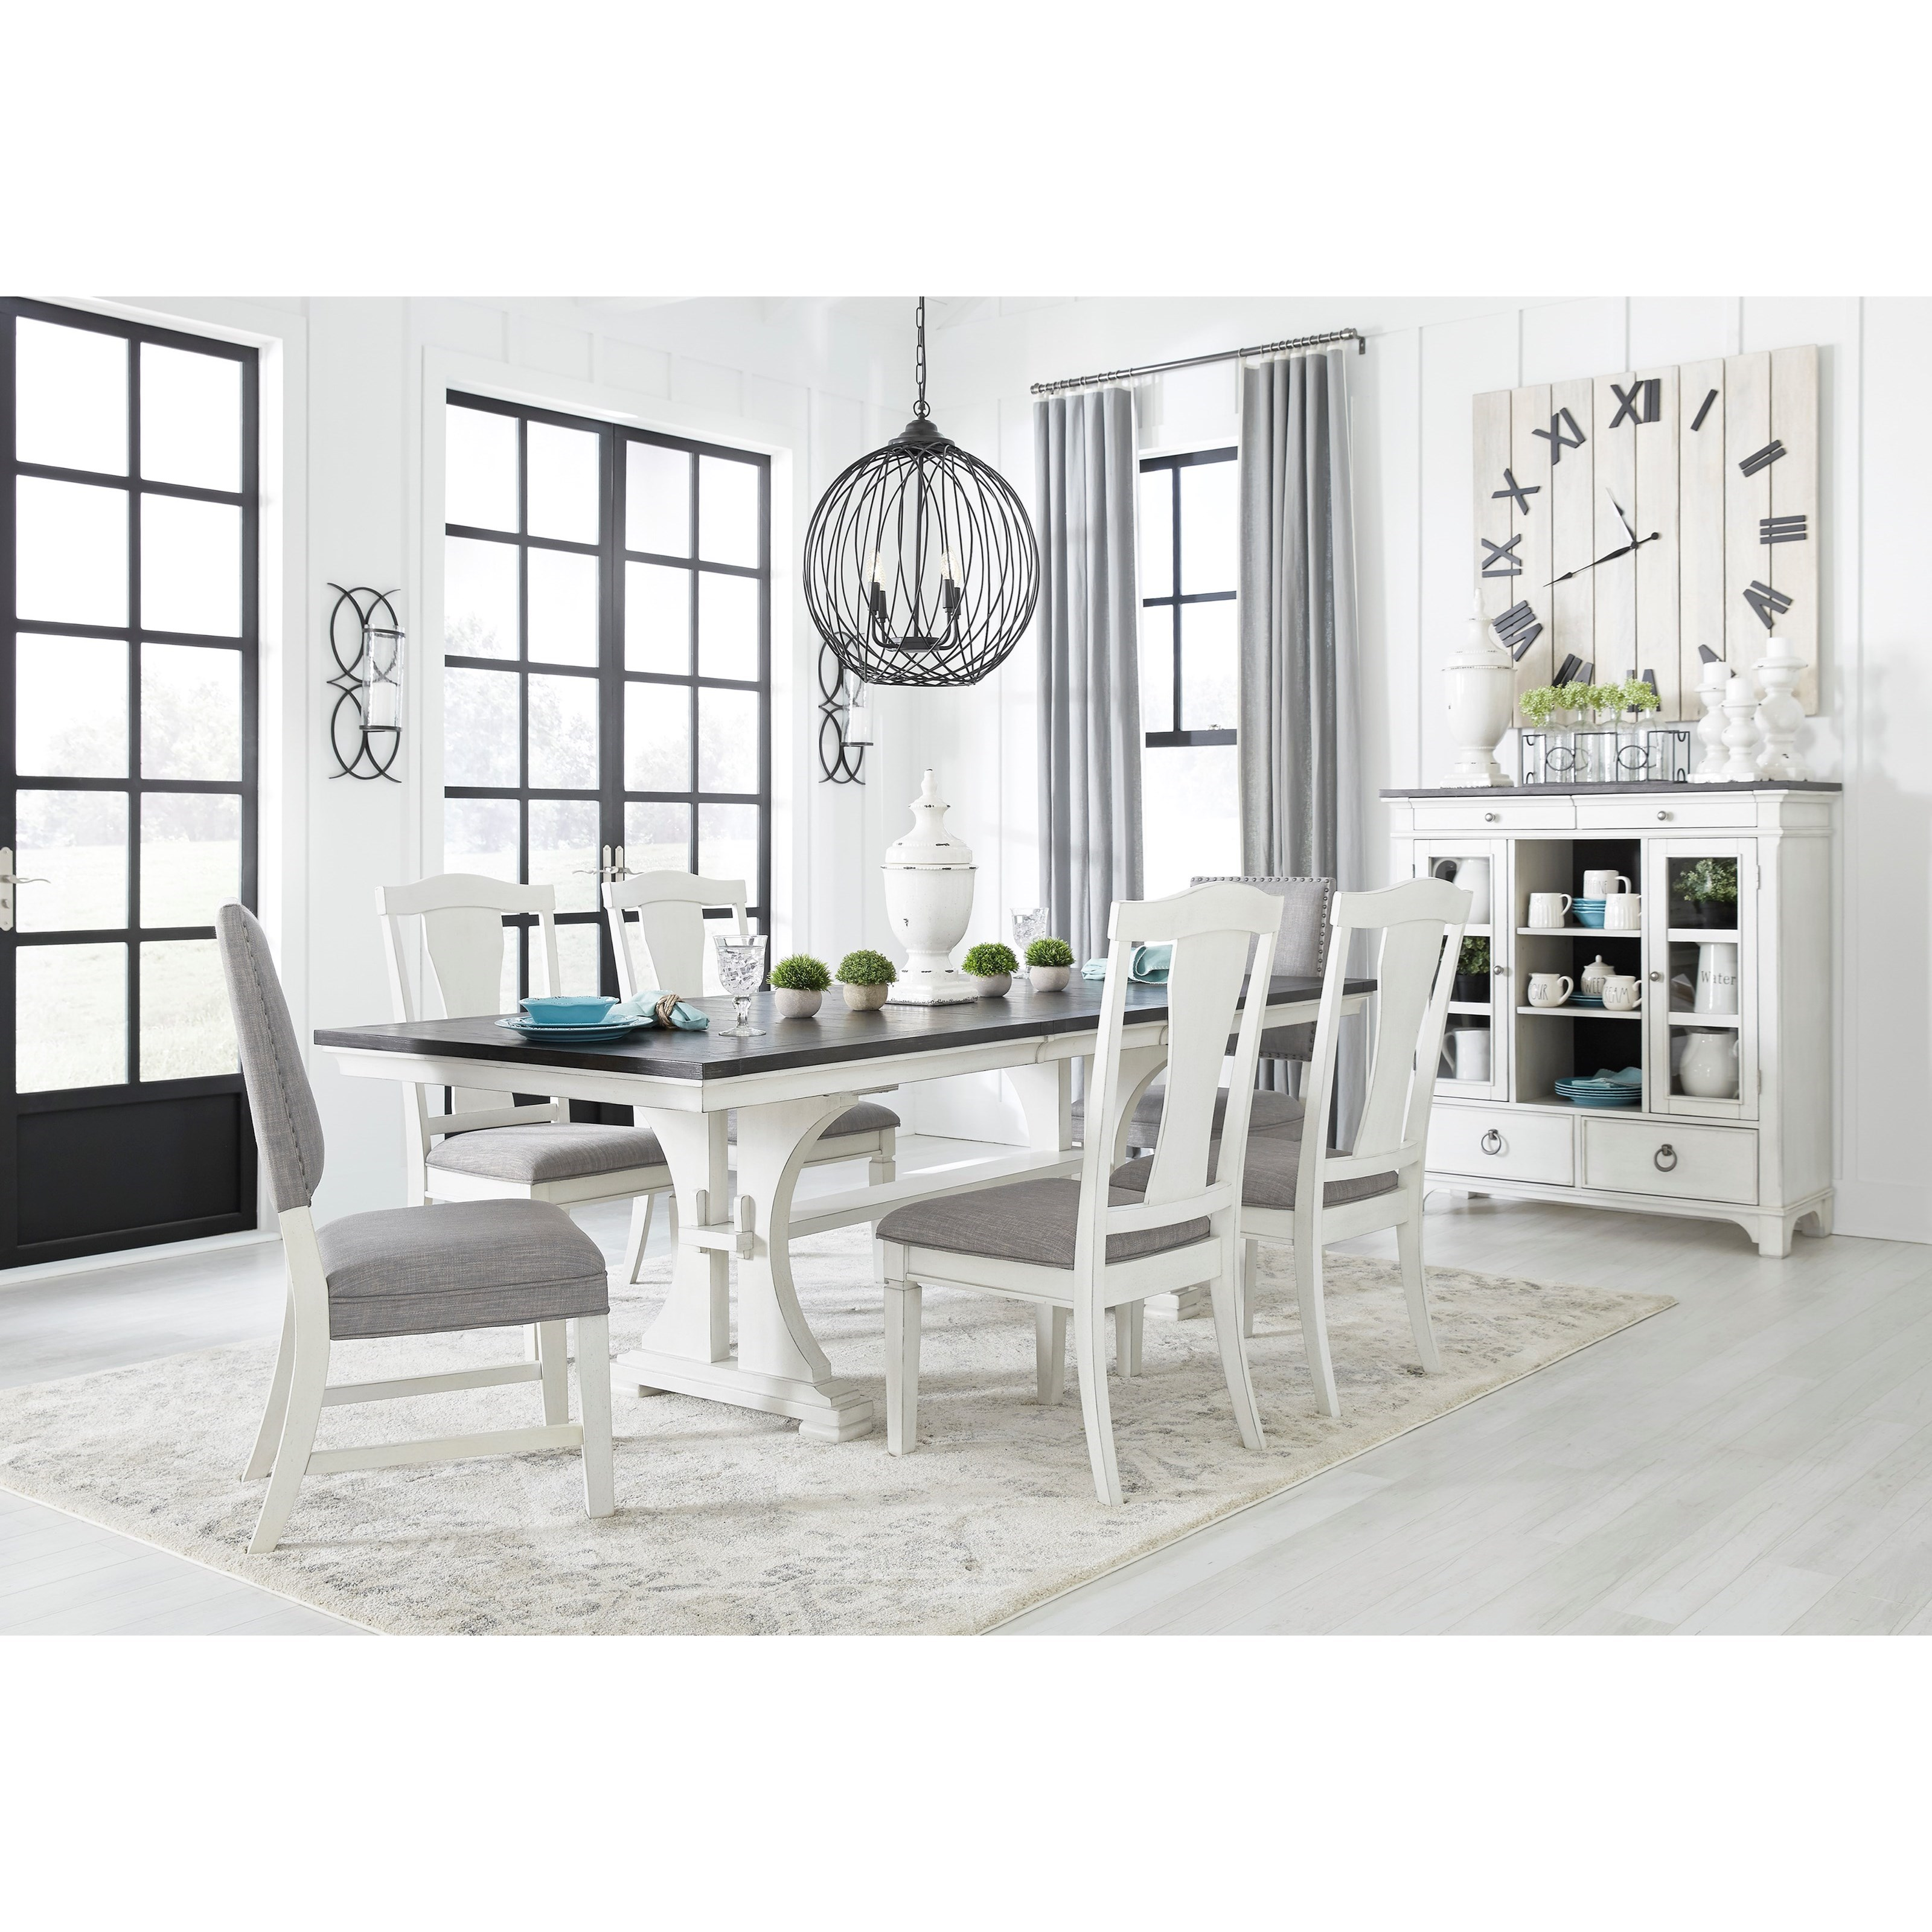 Nashbryn Dining Room Group by Benchcraft at Zak's Warehouse Clearance Center